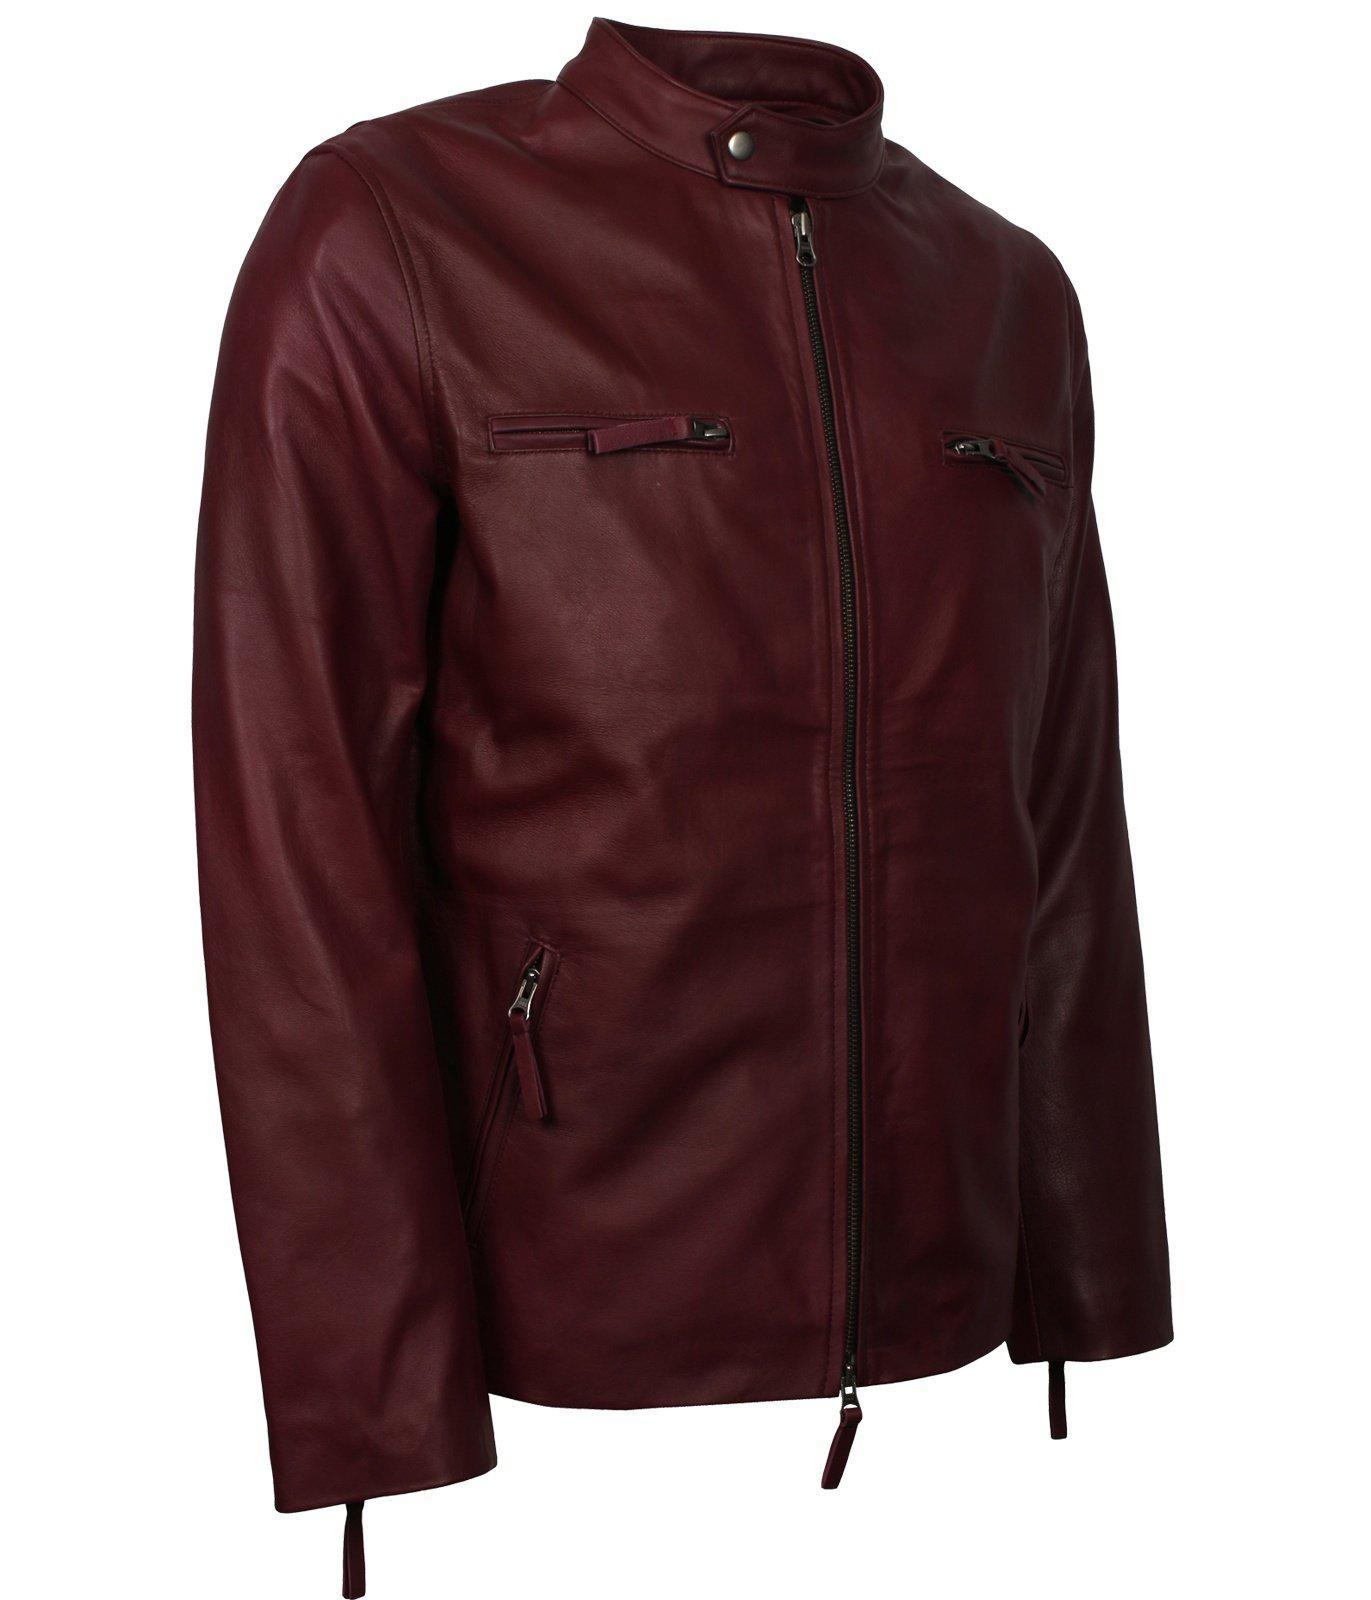 MAROON LEATHER JACKET MEN